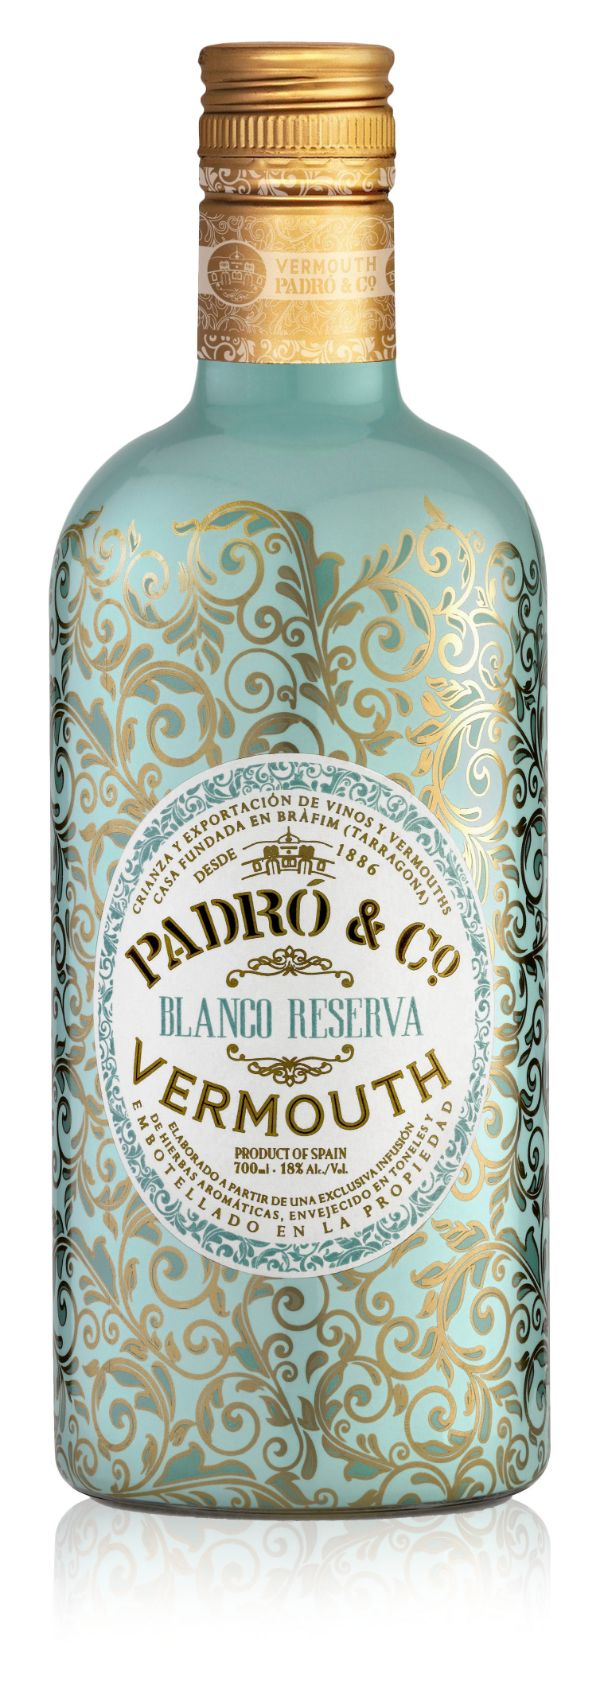 Padro & Co. Blanco Reserva Vermouth